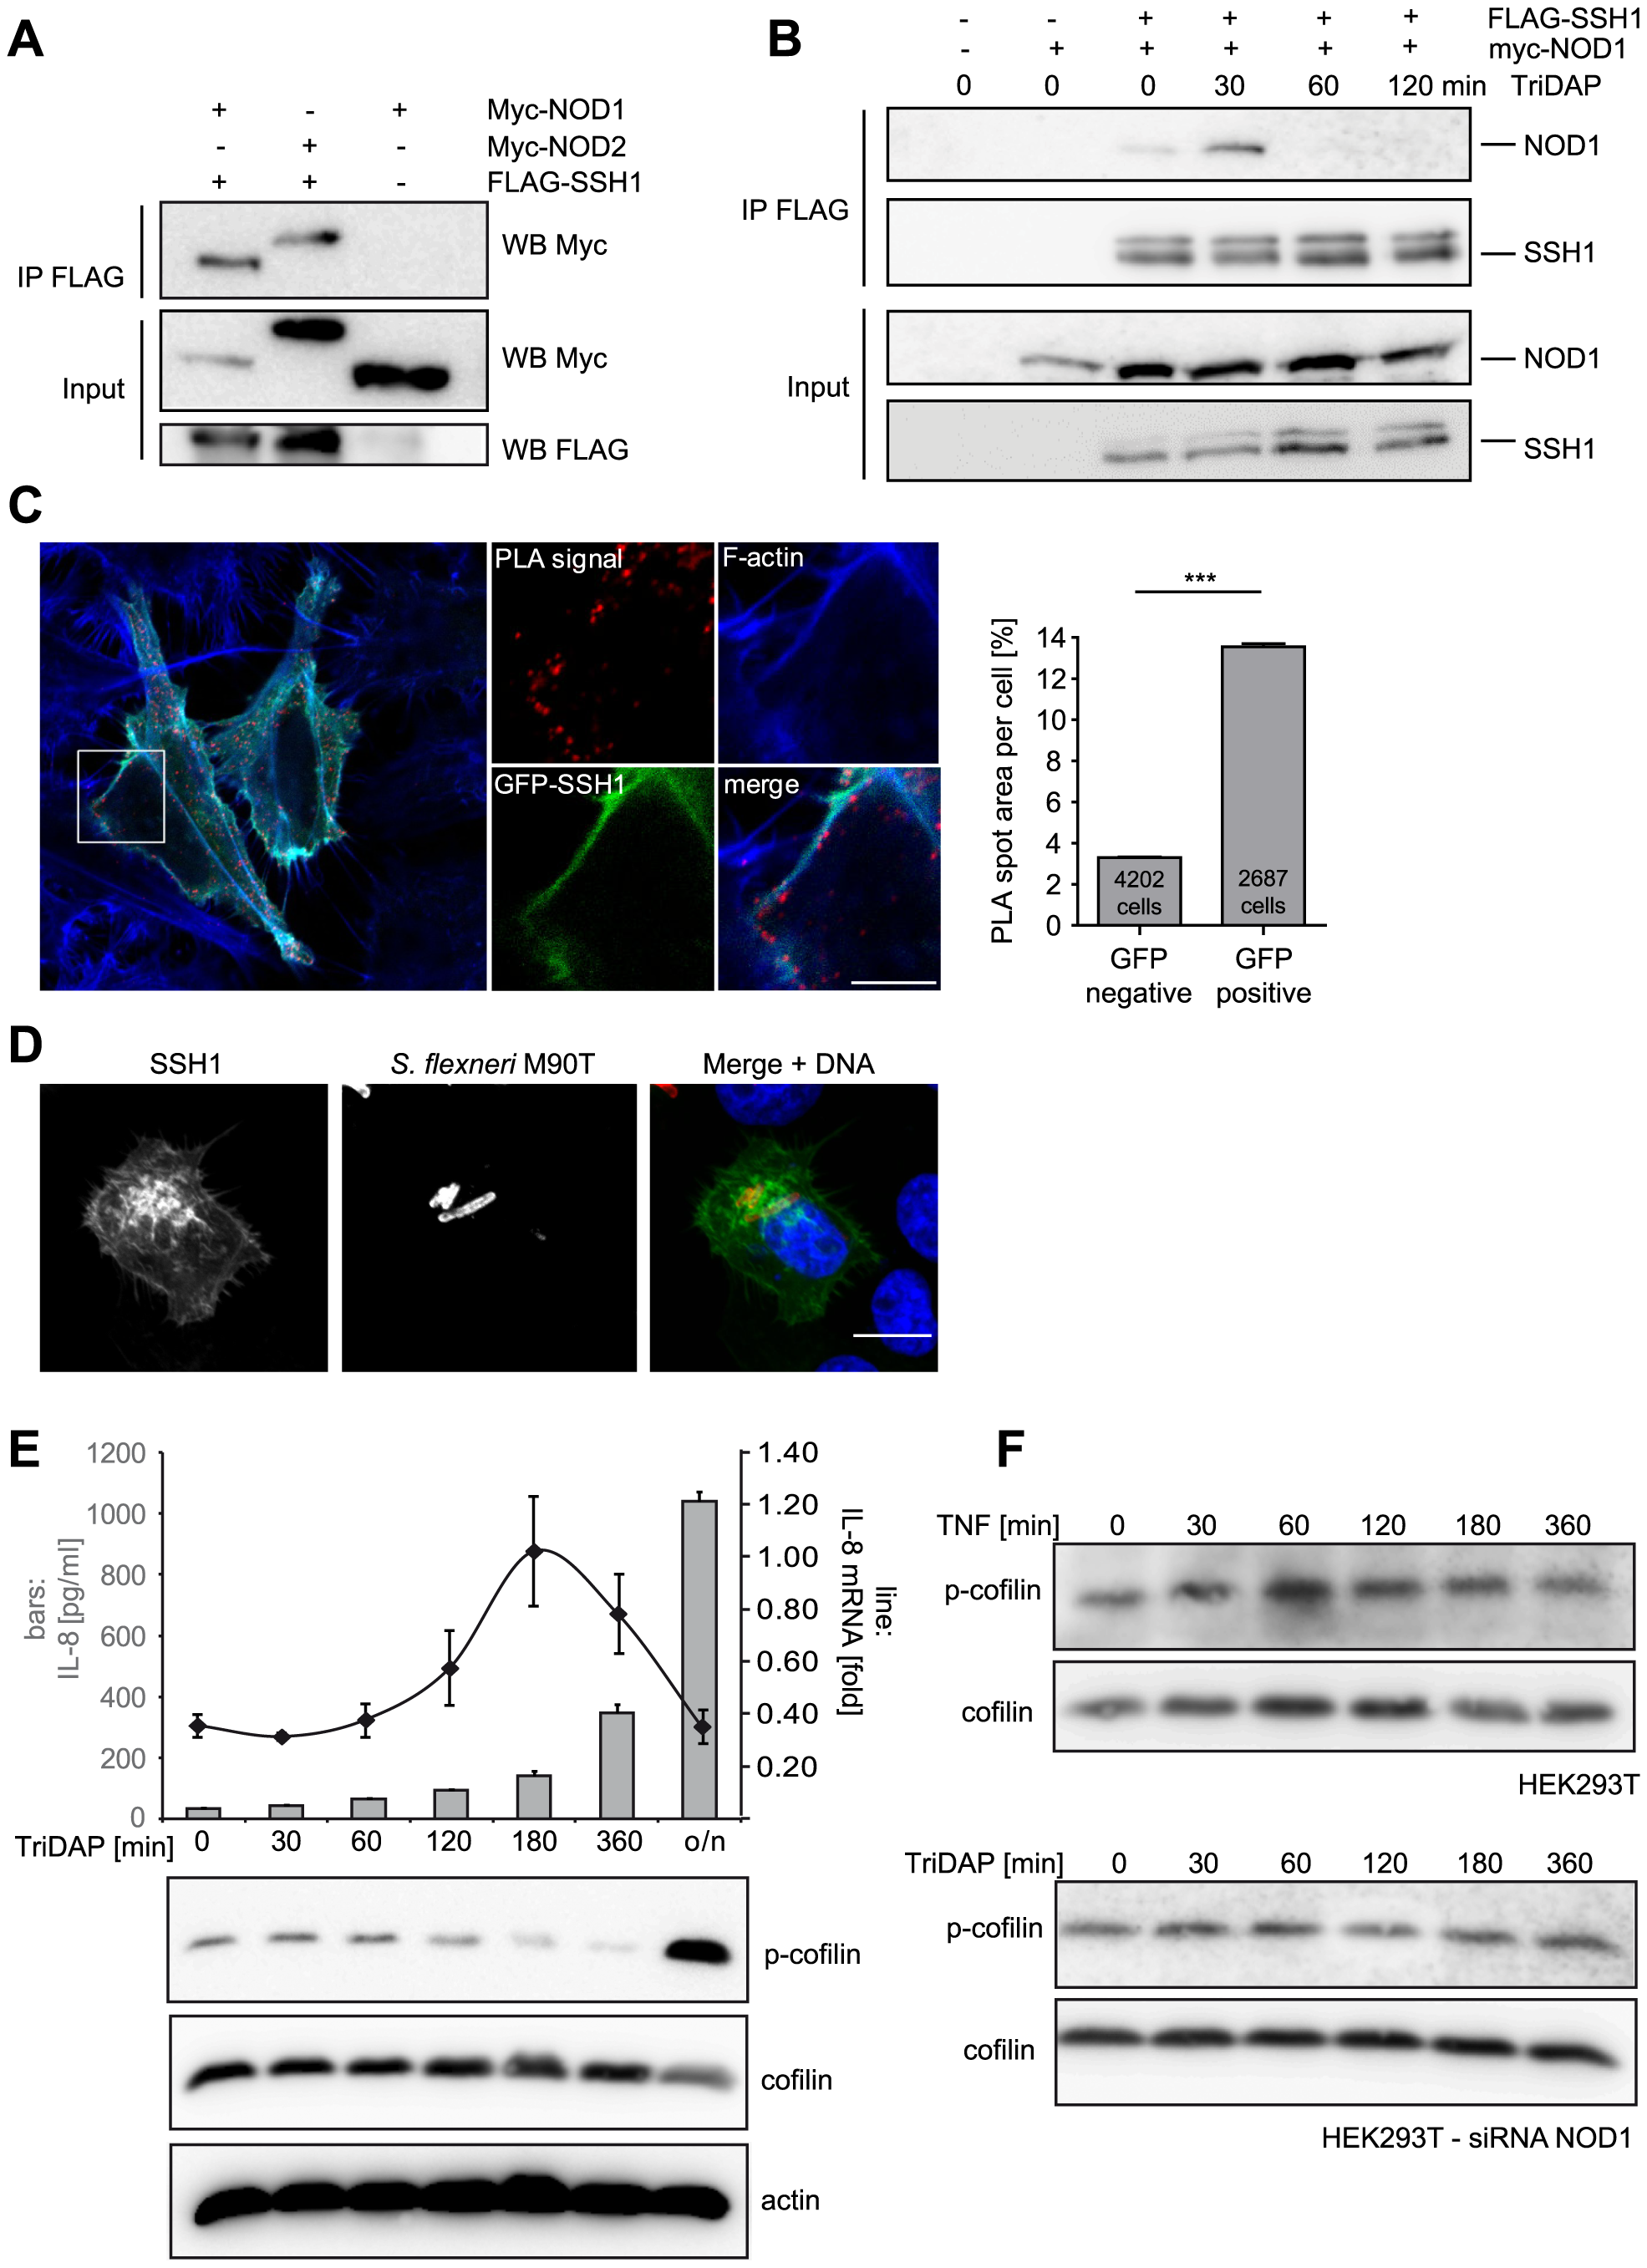 SSH1 interacts with NOD1 and regulates cofilin phosphorylation after NOD1 activation.